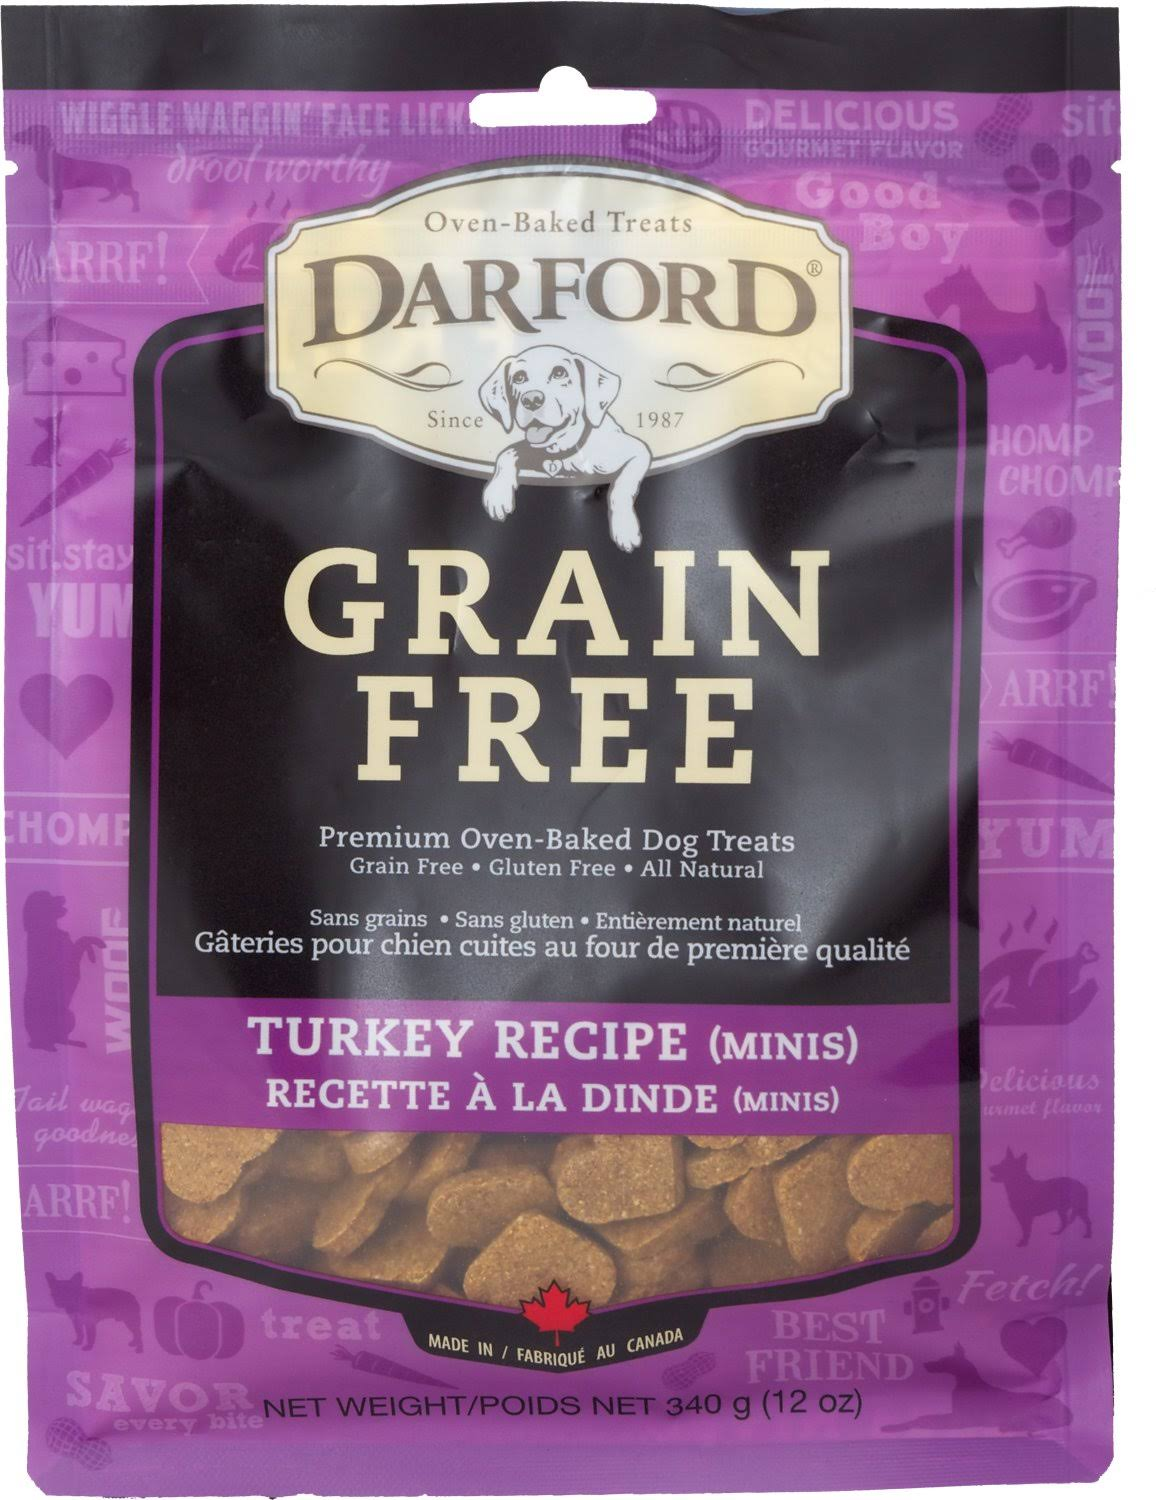 Darford Biscuits - Turkey Recipe